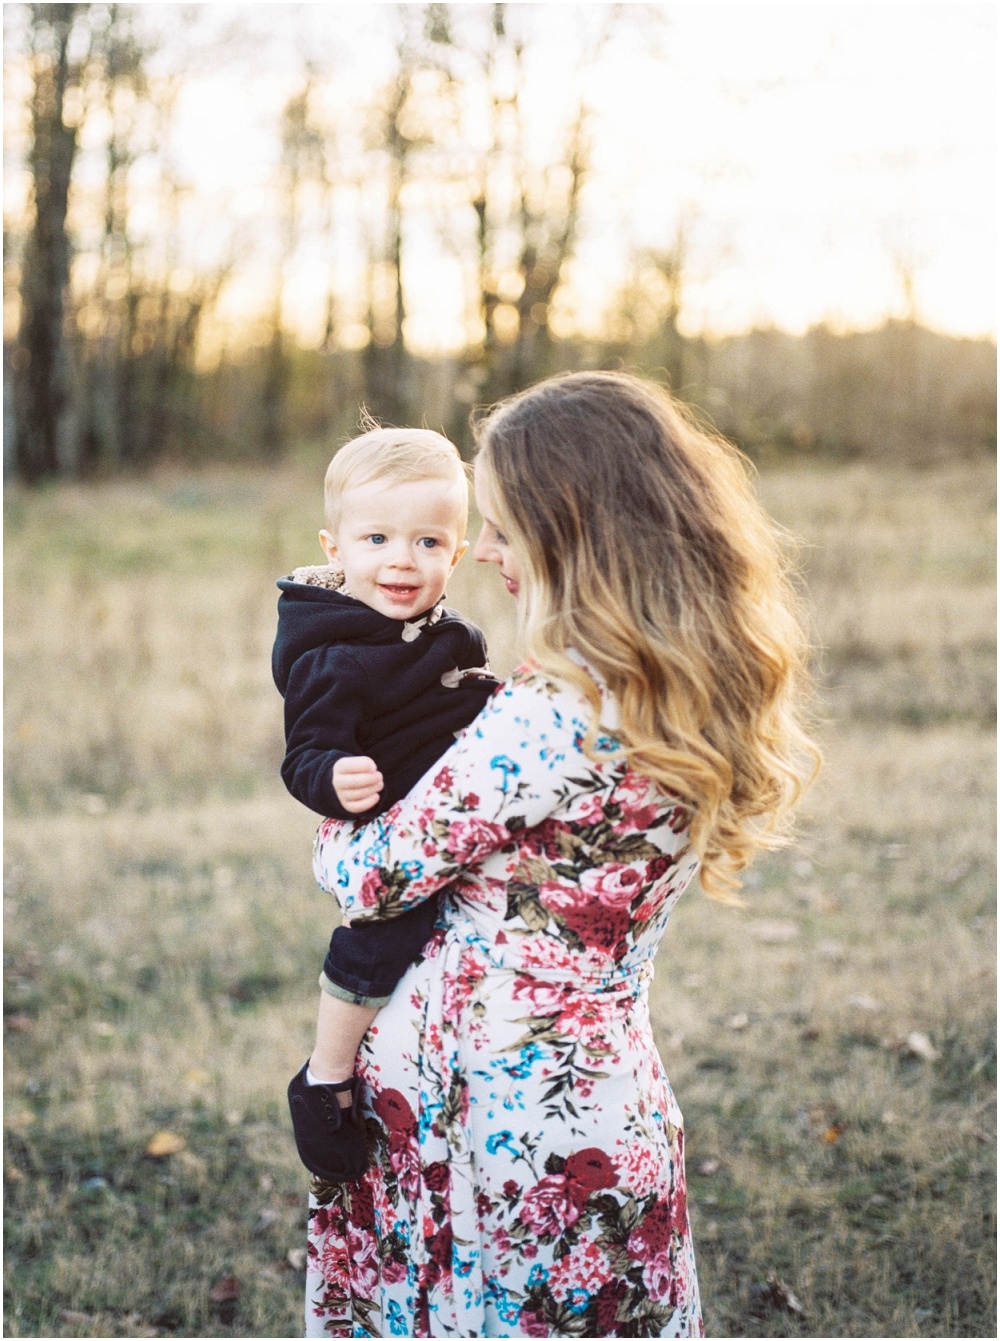 Maternity Photography by Jenni Kupelian and featured on The Fount Collective, a lifestyle publication and community devoted to the art of being a mother 02.jpg